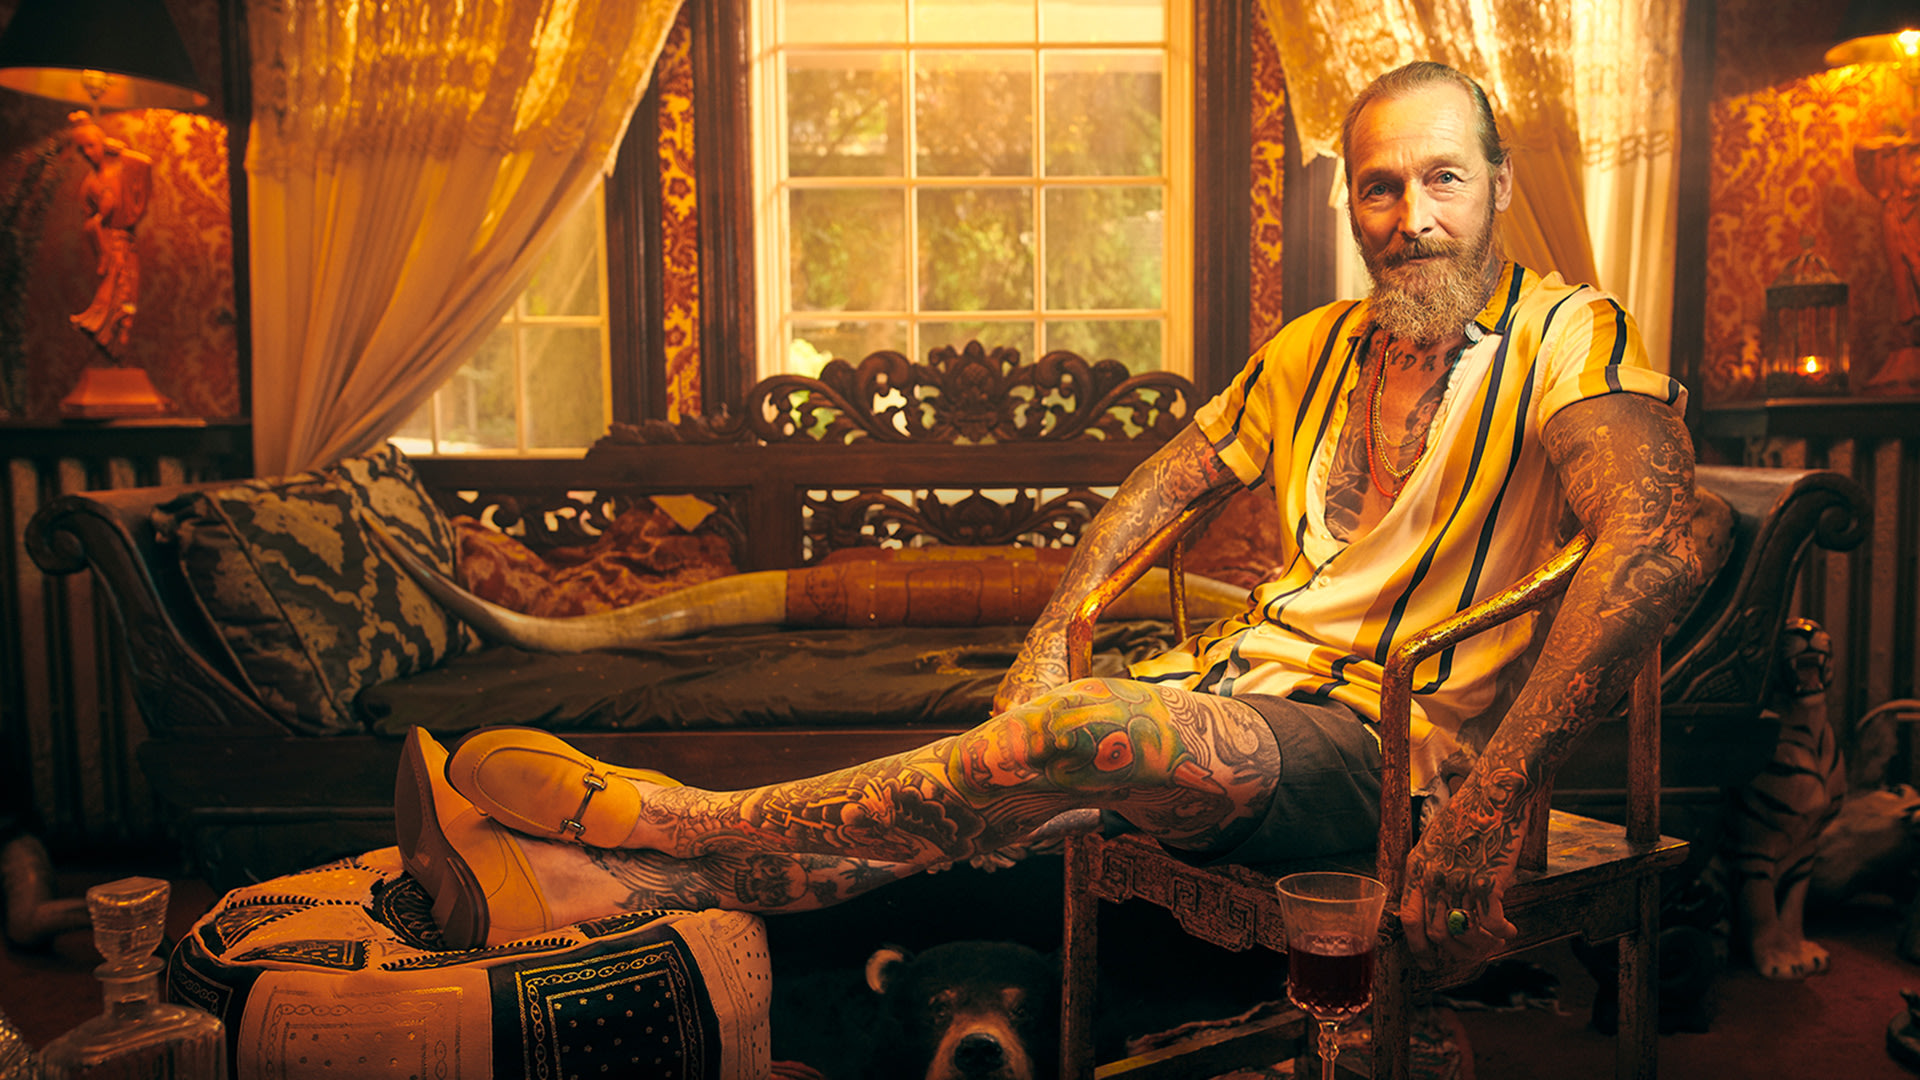 Allen showing his tattoos in an armchair in a living room